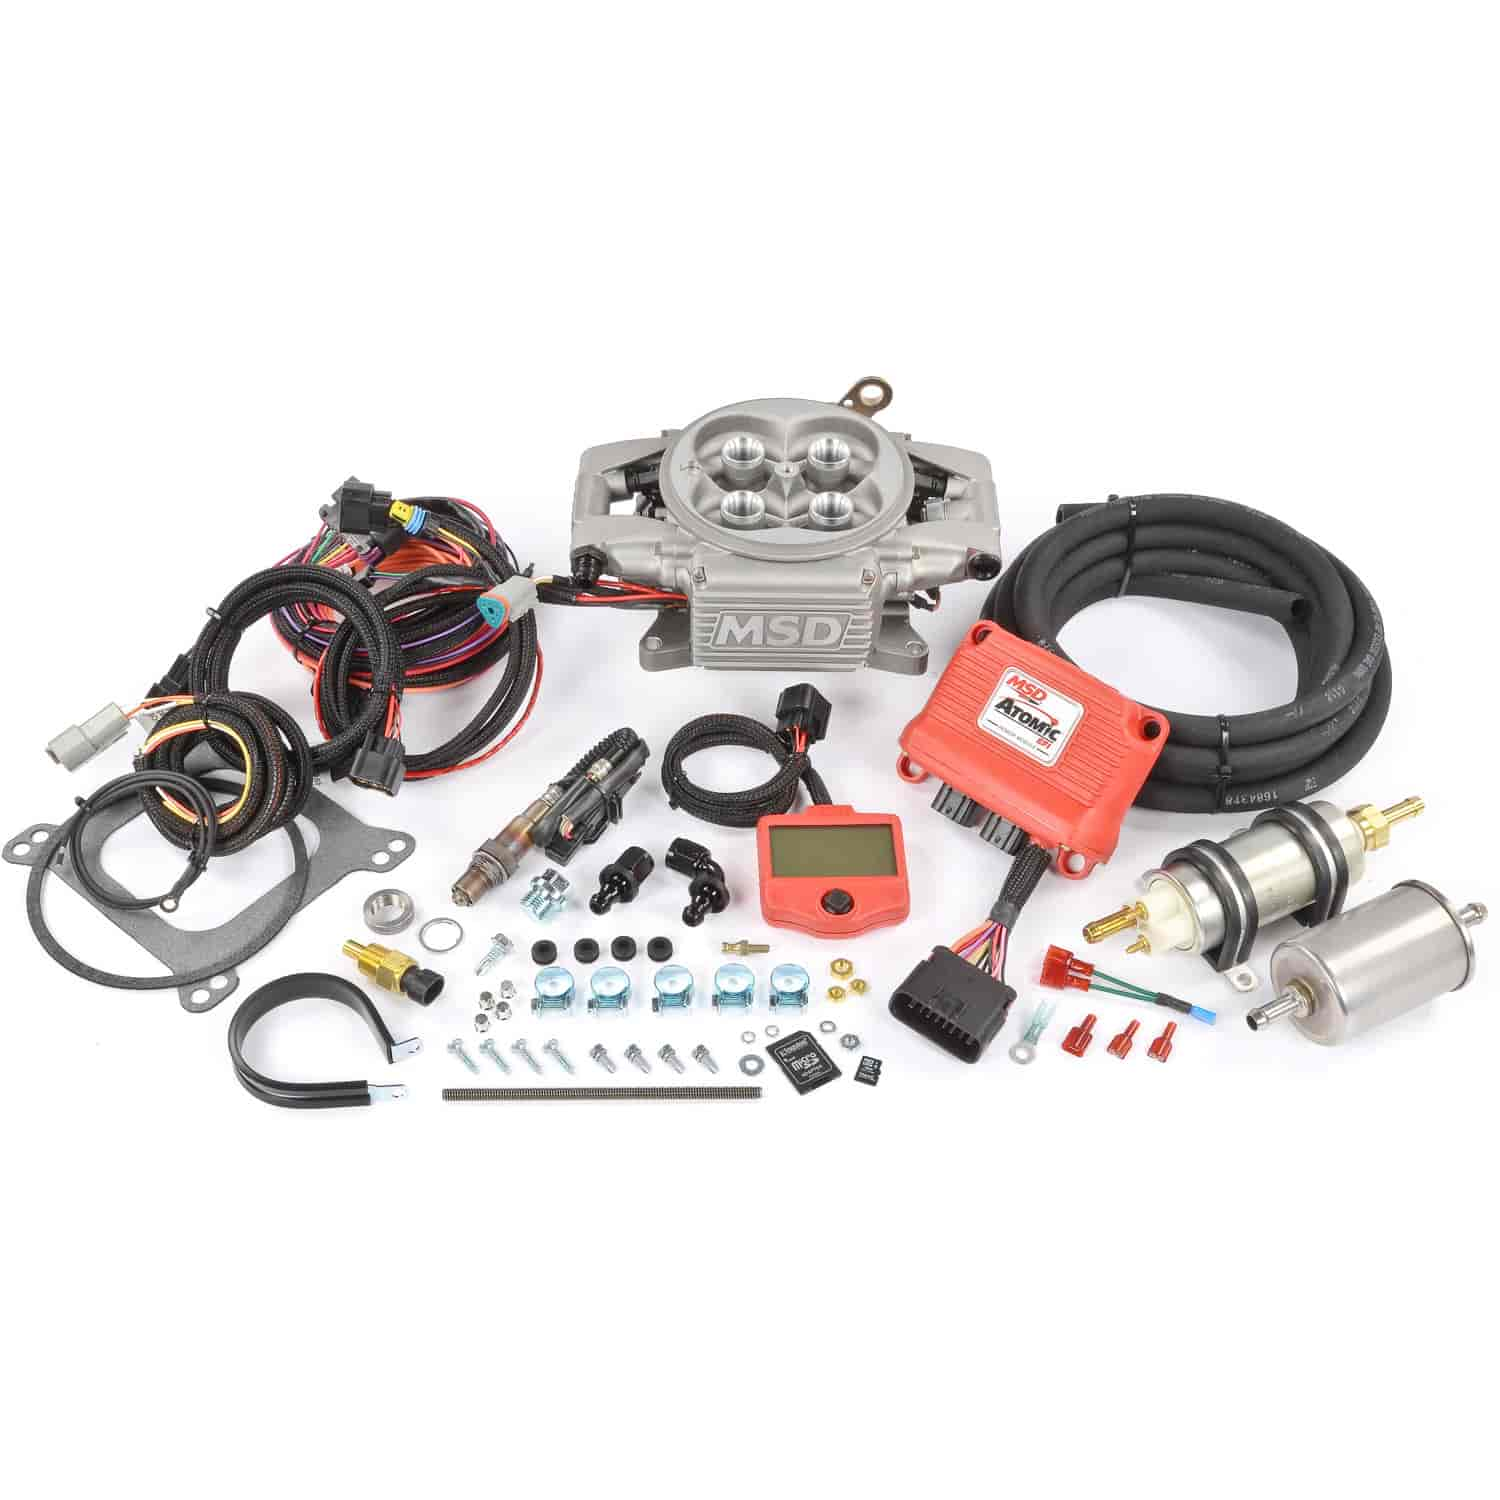 Msd Ignition 2900 Atomic Efi Master Kit Max 525 Hp Jegs Box Diagram Besides Distributor Wiring Together With